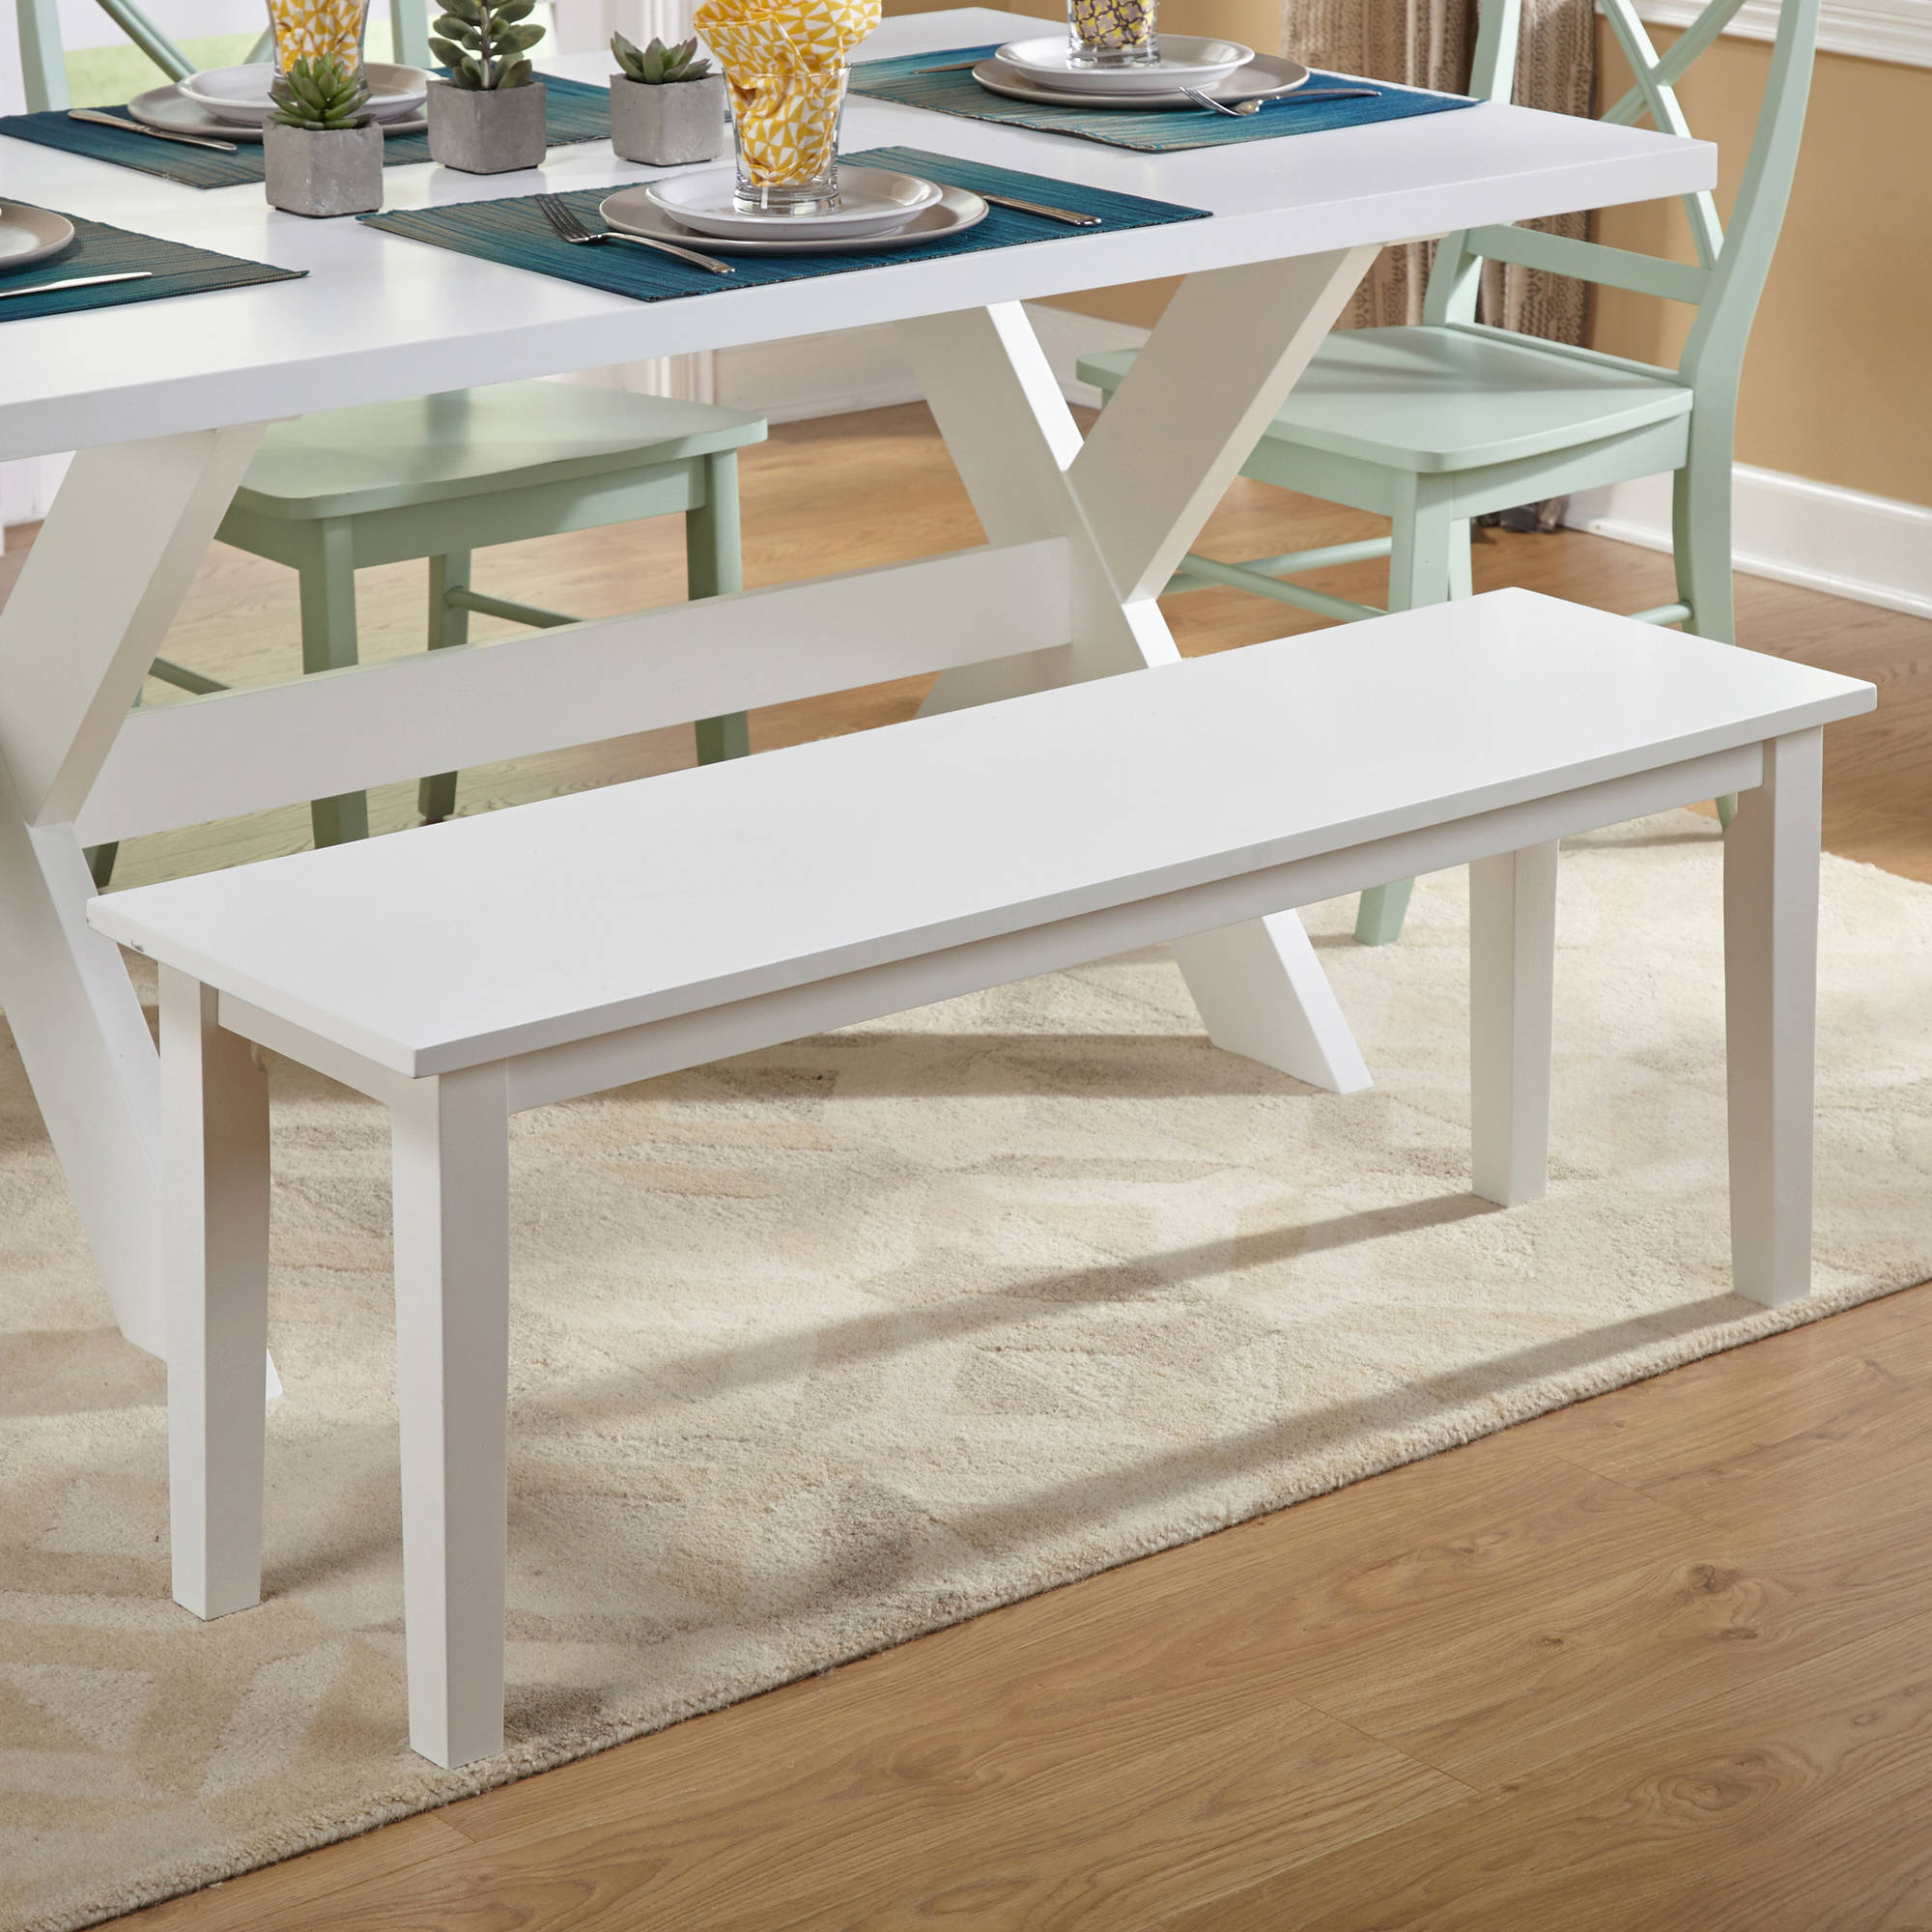 Exceptional Signature Design By Ashley Bolanburg Dining Bench   Walmart.com